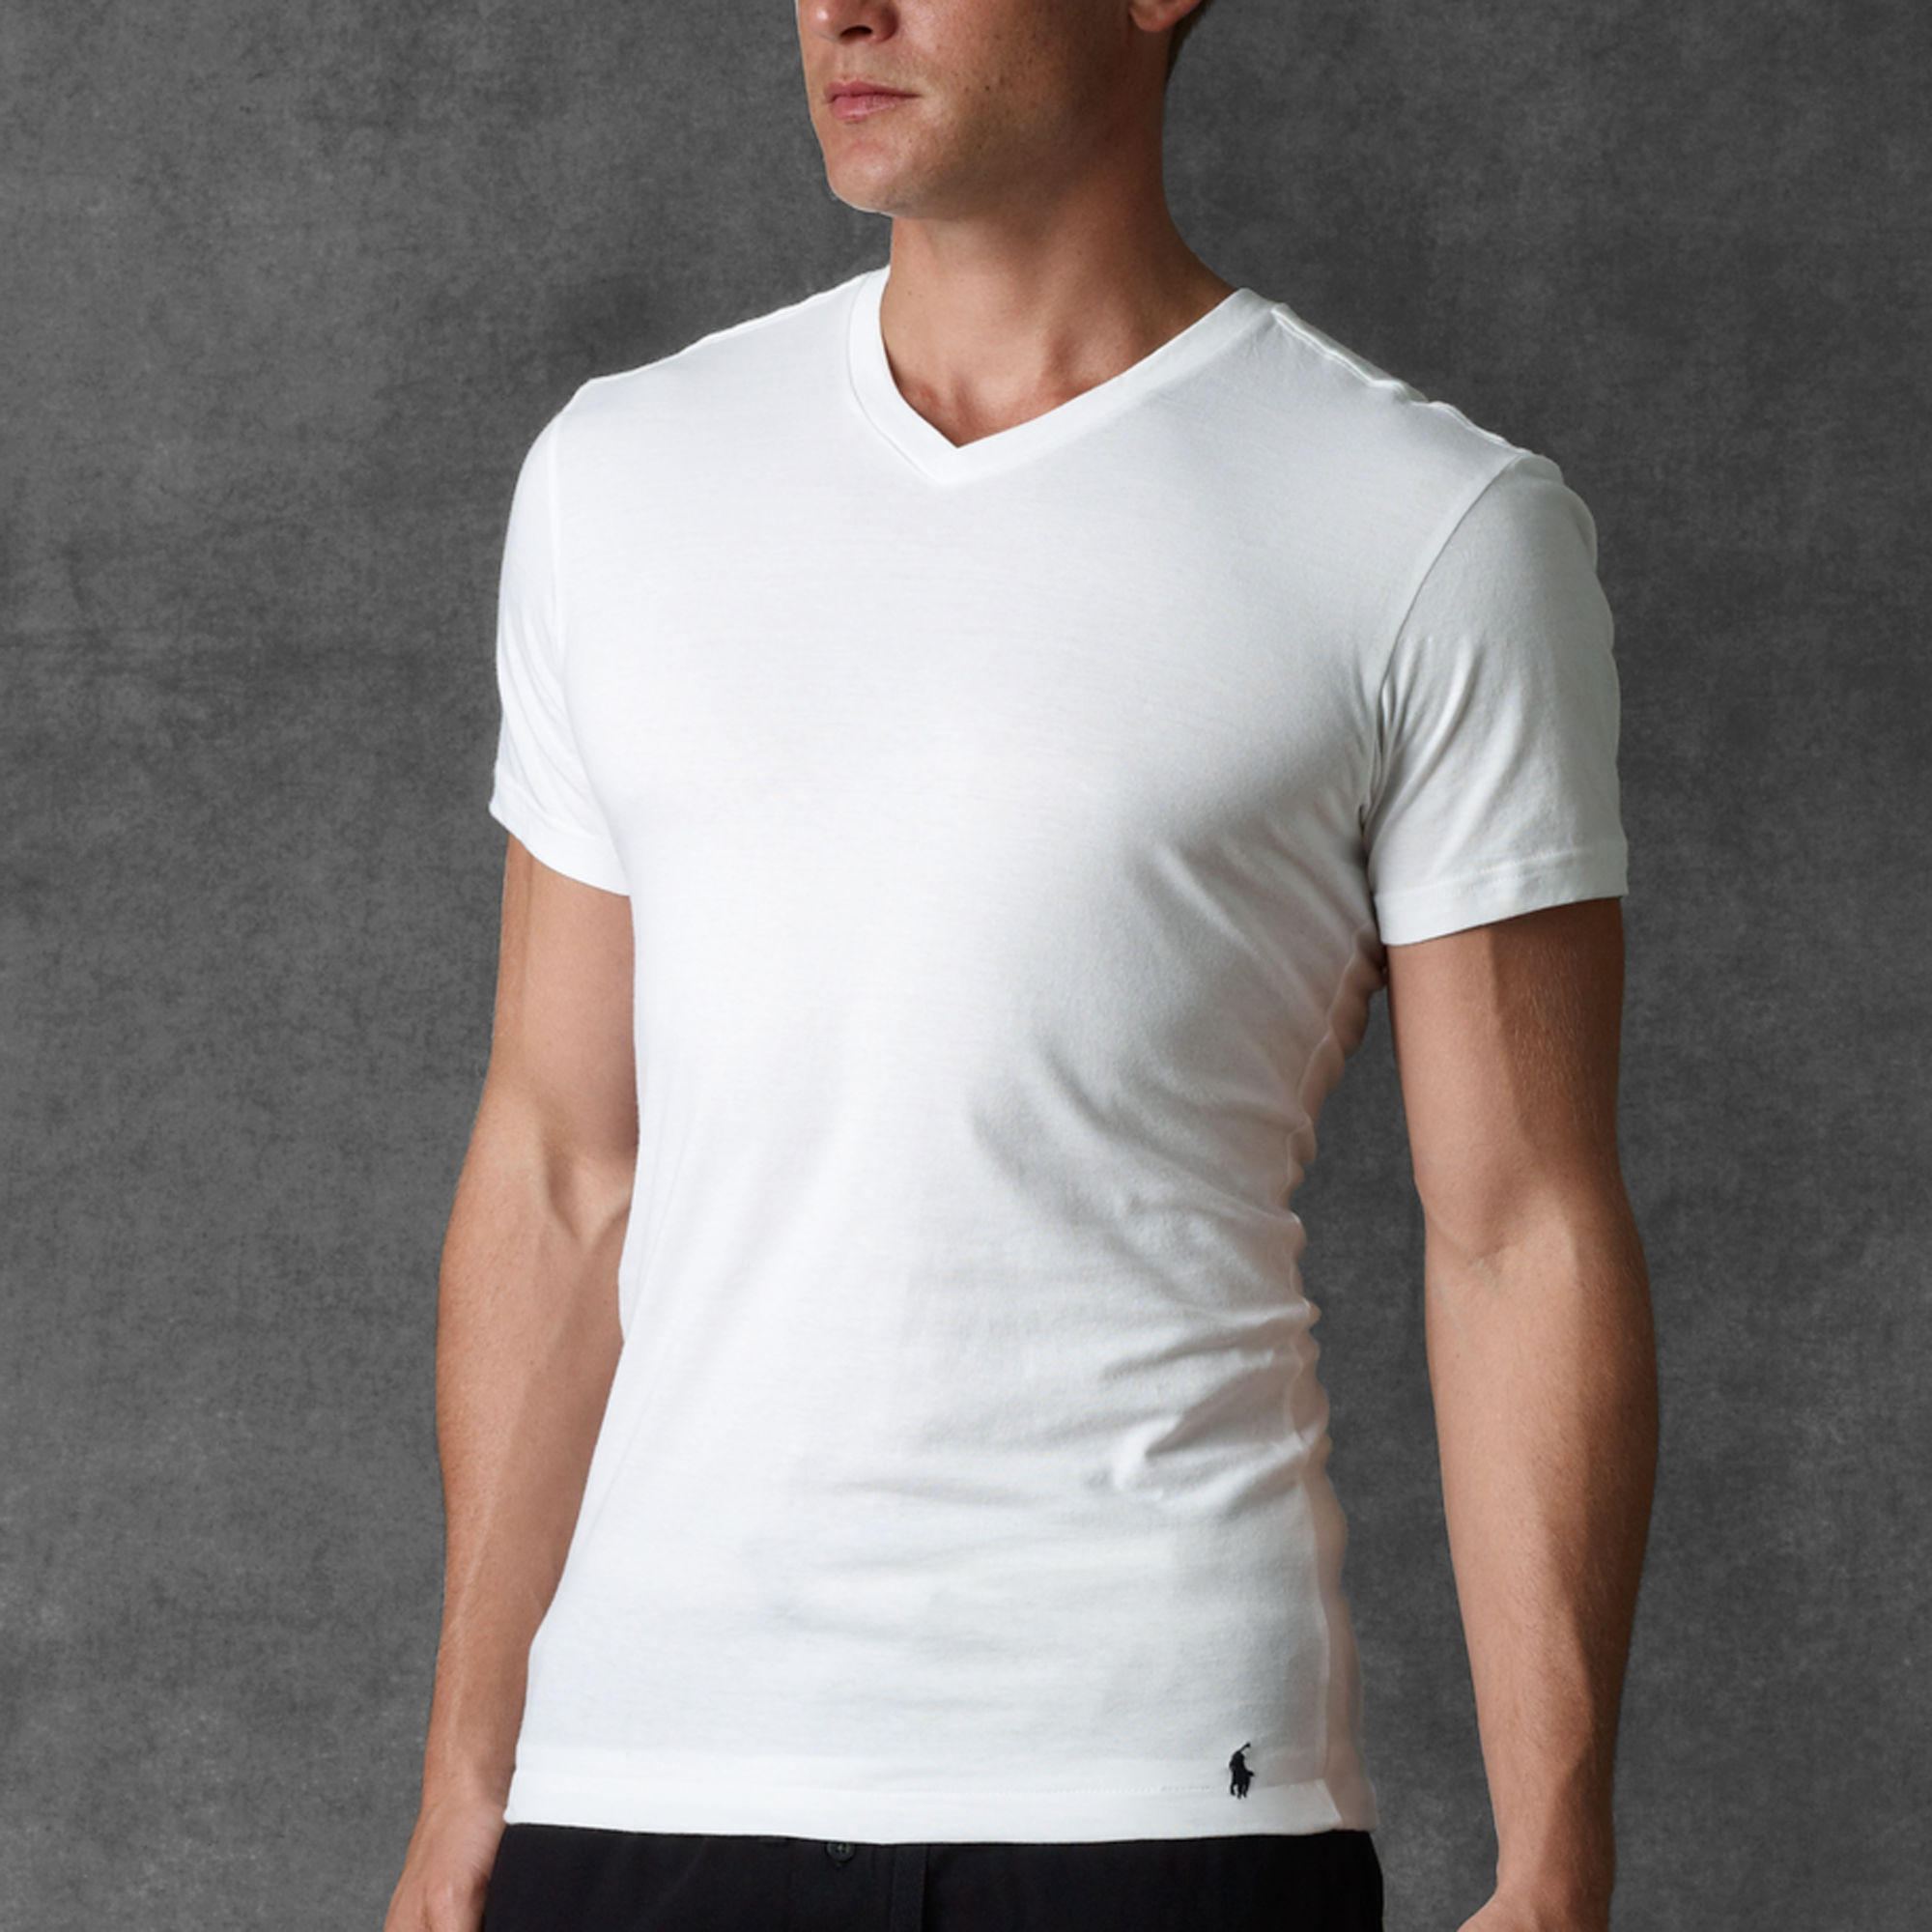 Slim-Fit V-Neck Three-Pack @ Ralph Lauren